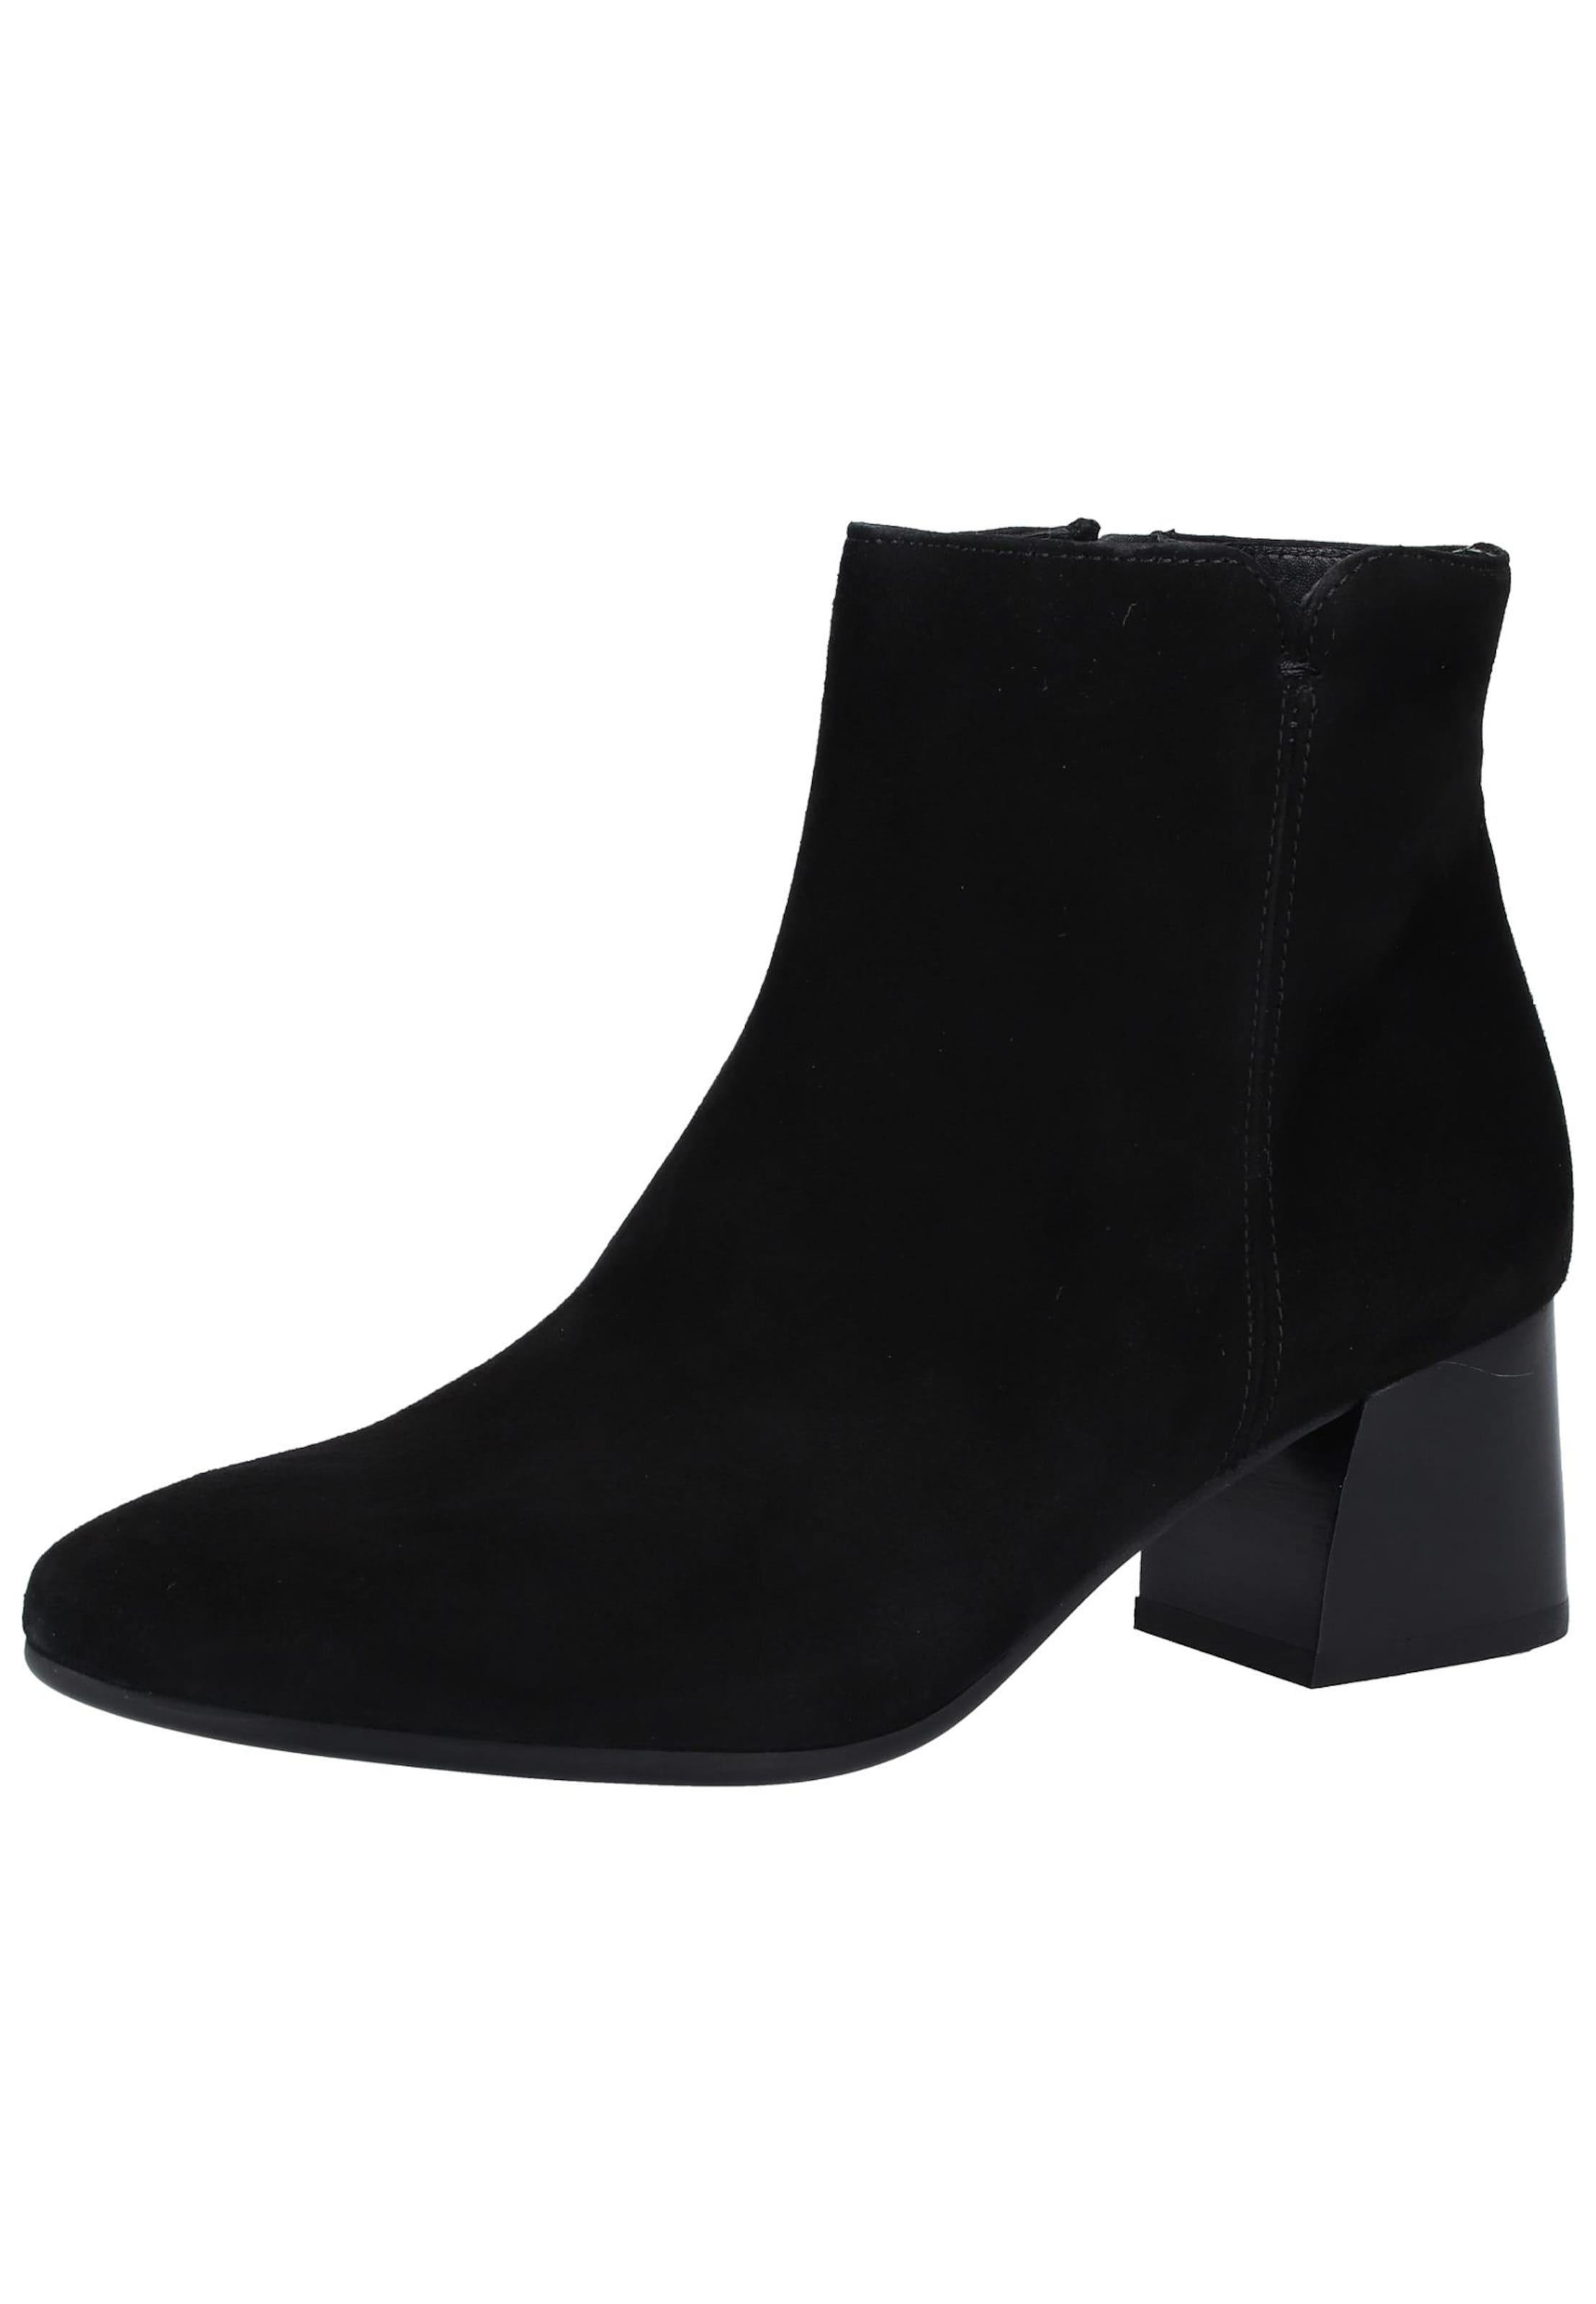 Bottines Paul En Bottines Green En Green Noir Paul CeodxB